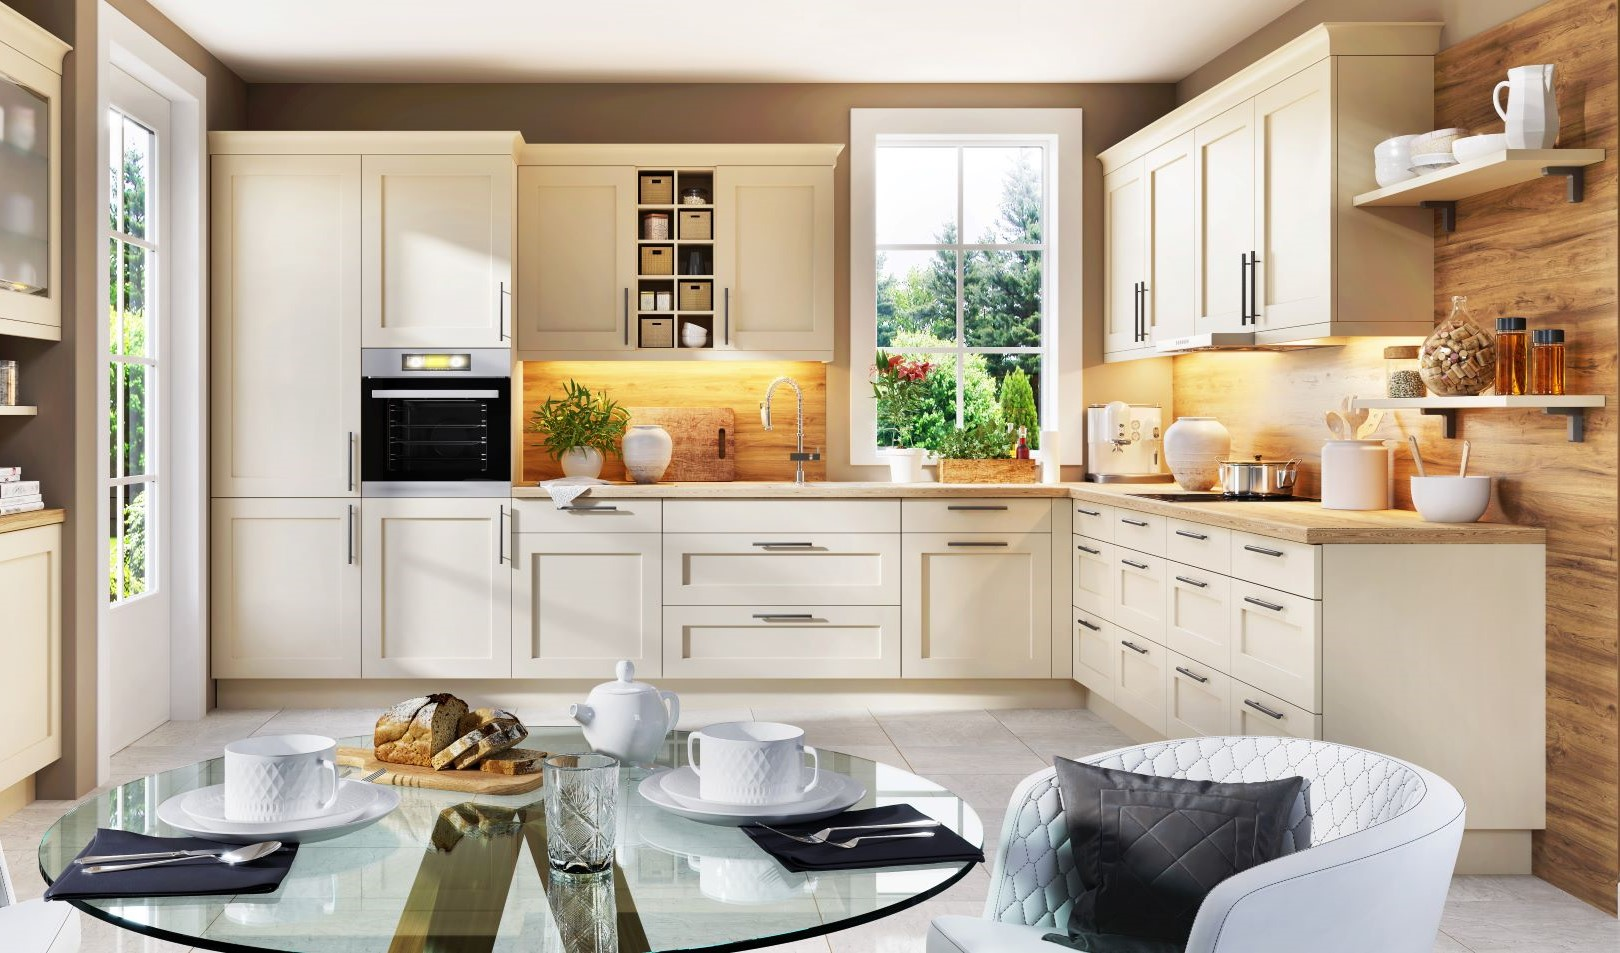 How To mix Decorating Styles - use second style in small doses